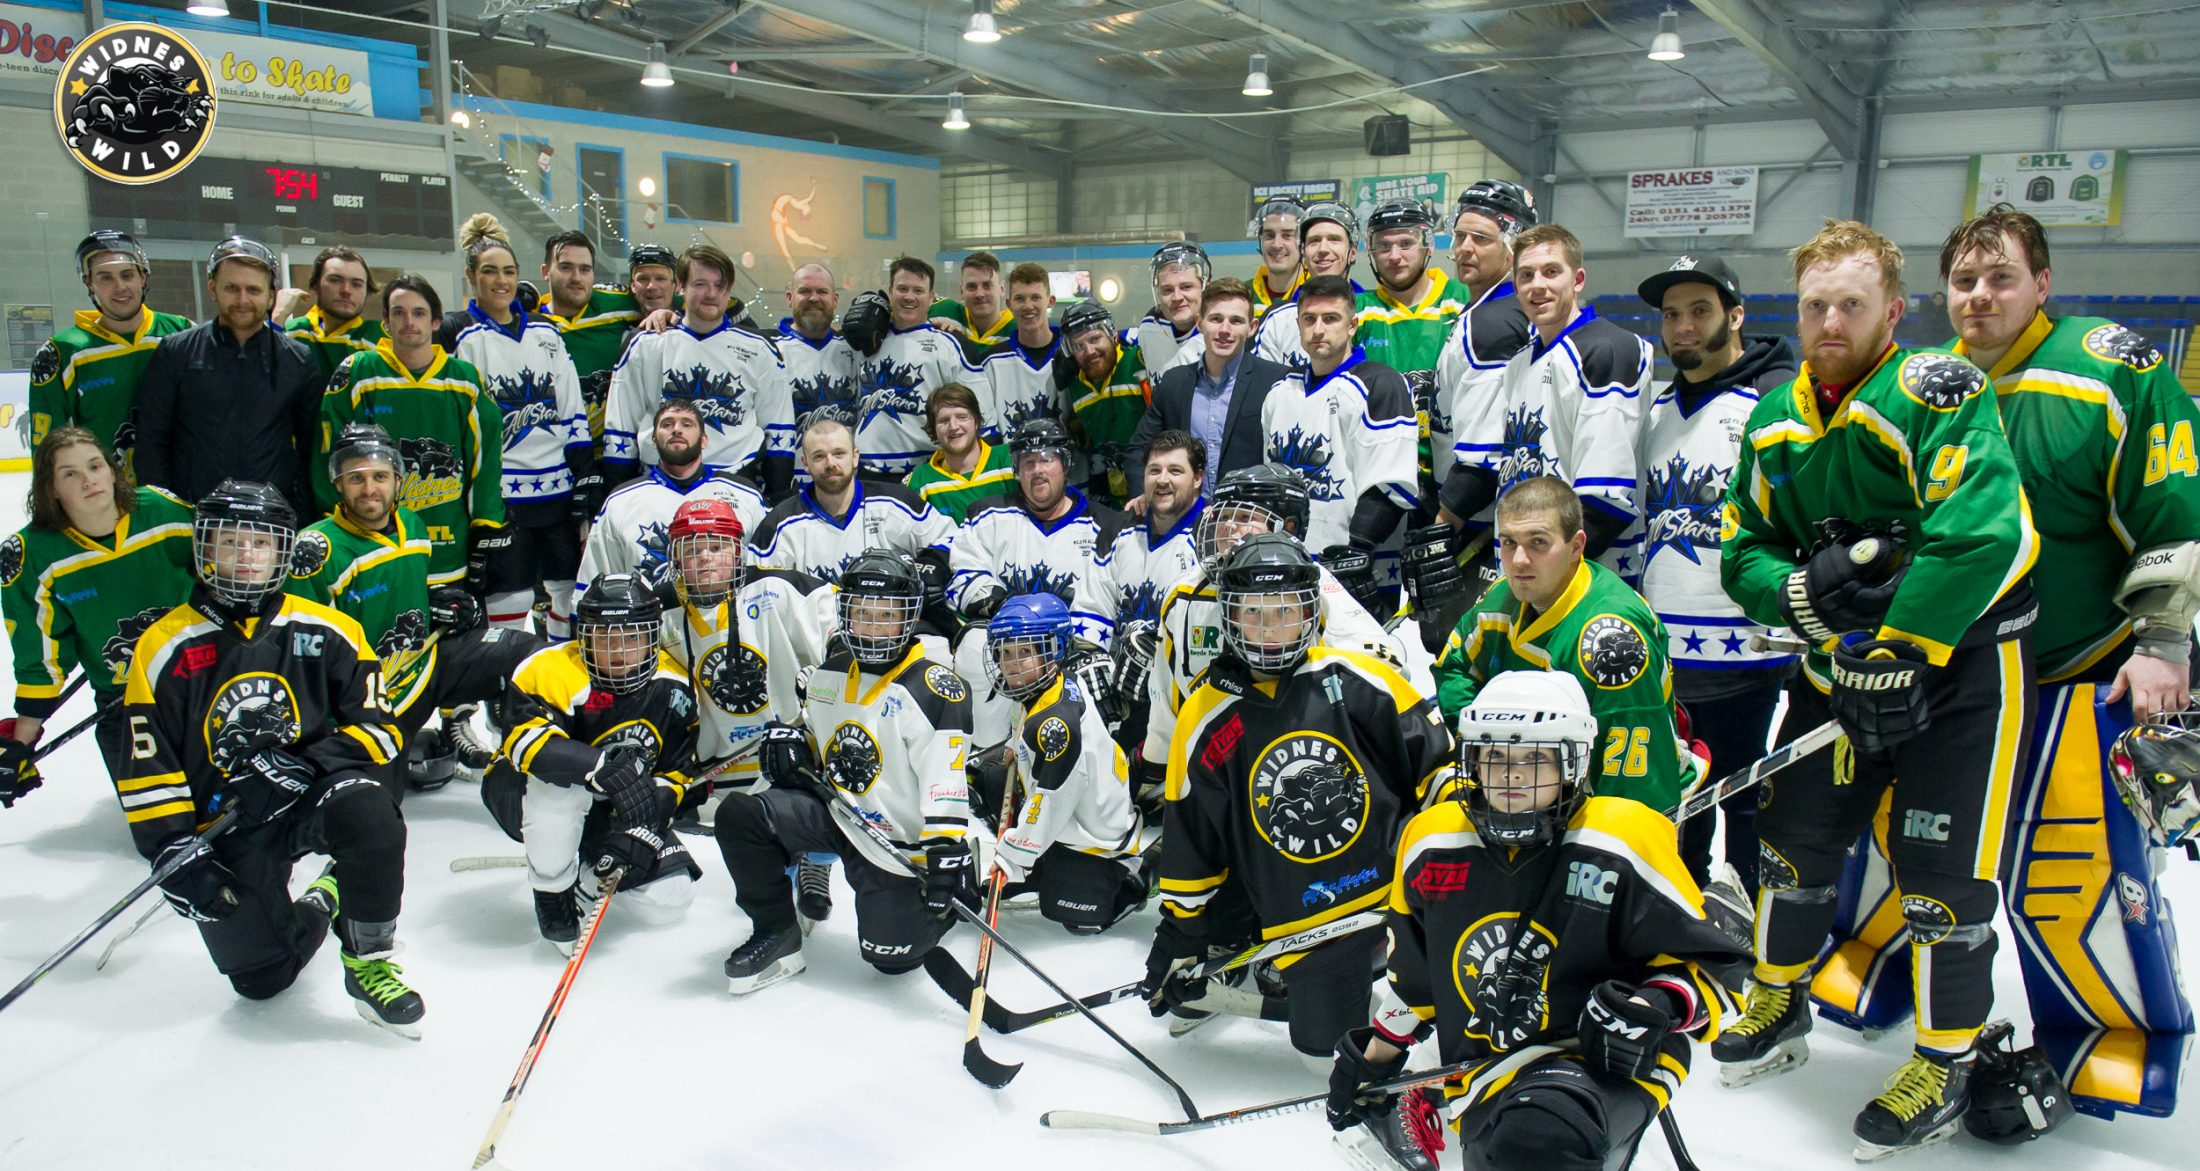 Festive Fun For A Good Cause In The Widnes Winter Classic